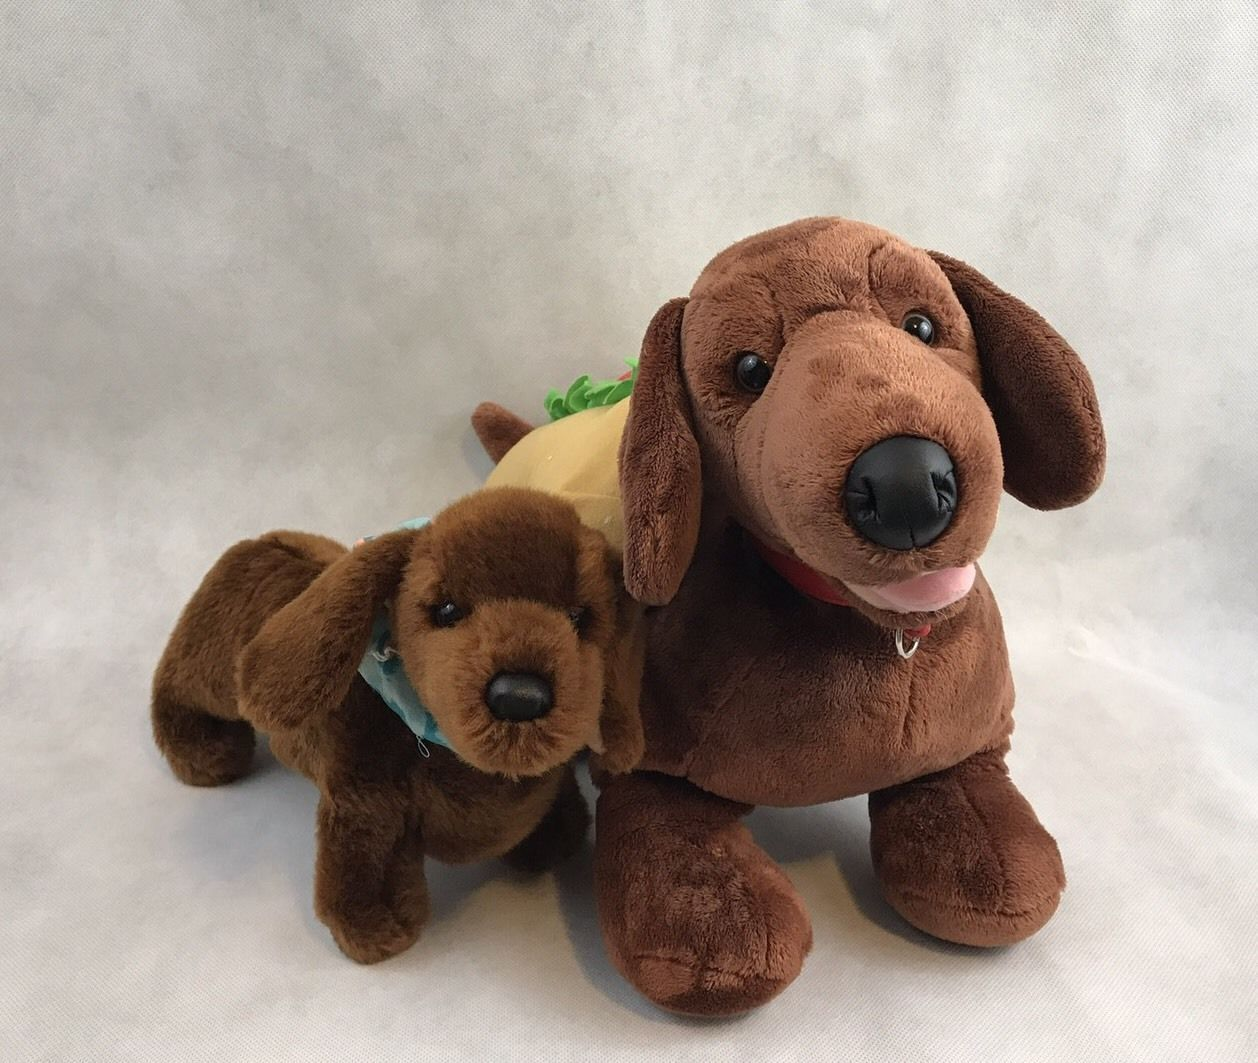 Lot Of 2 Dachshund Weenie Dogs Plush Stuffed Animals The Large